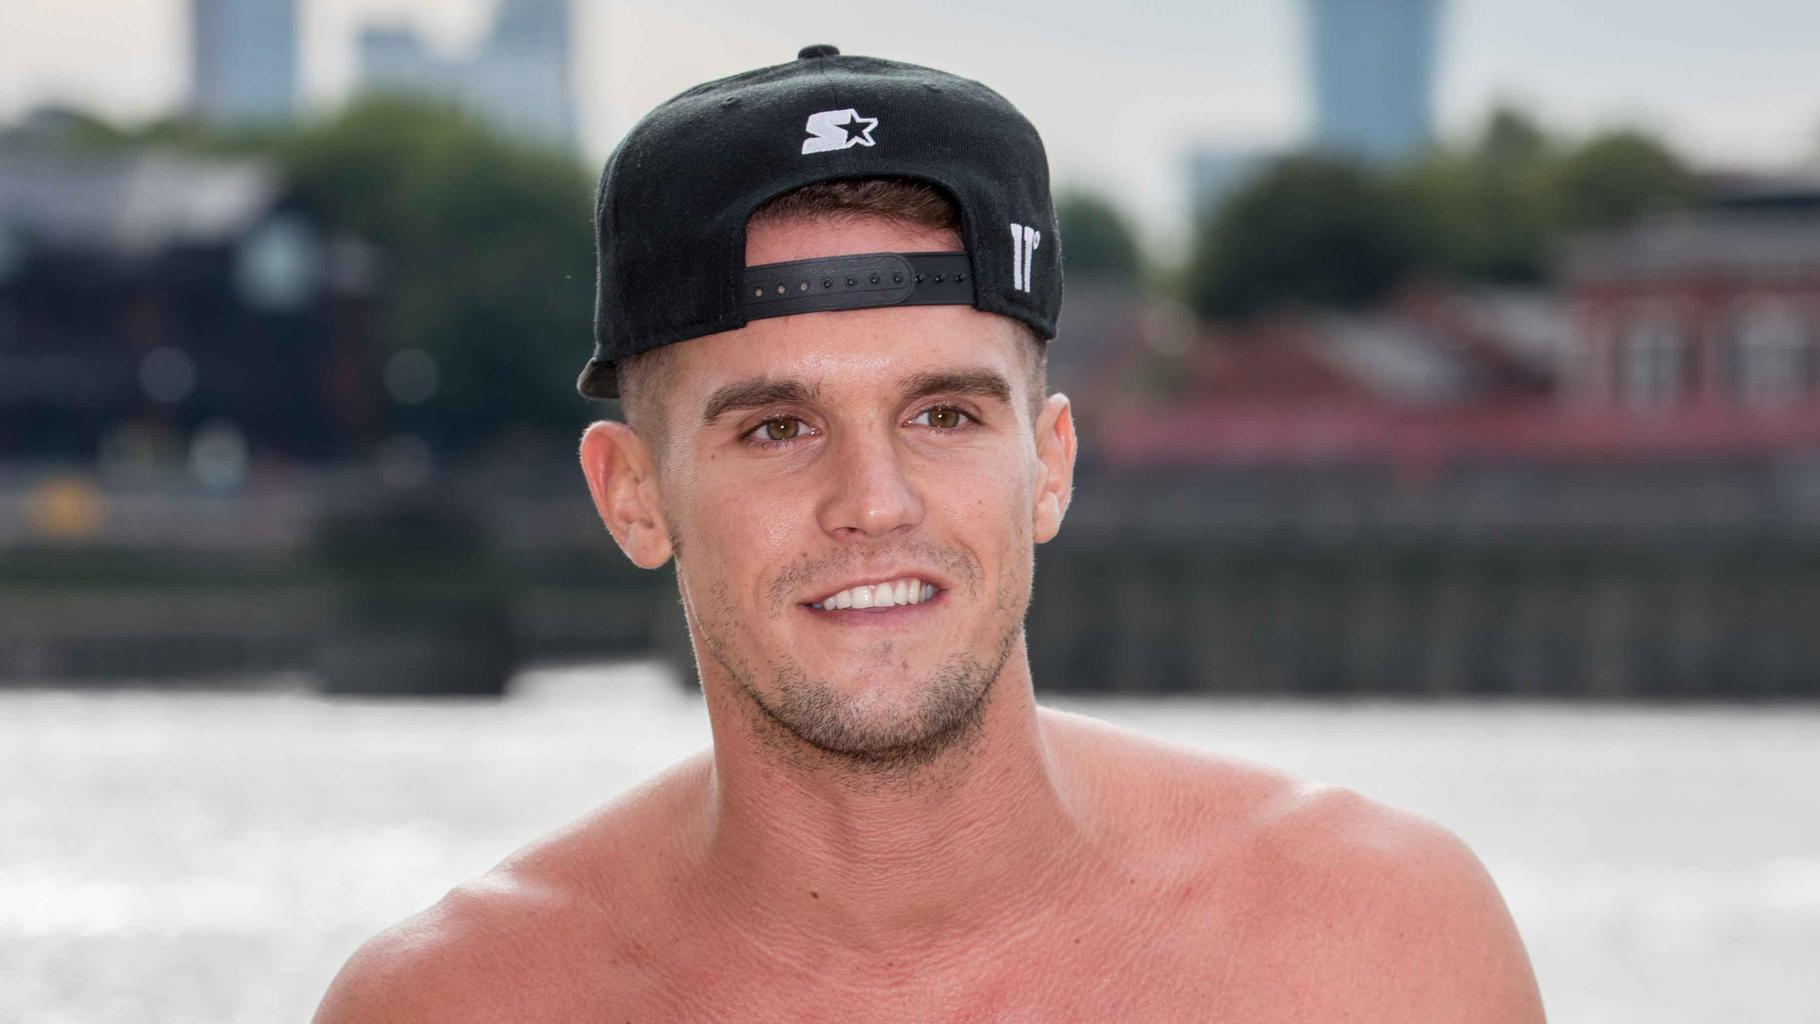 Geordie Shore Naked Pictures how big is gary beadle's penis? with pictures 🍆 | celebrity